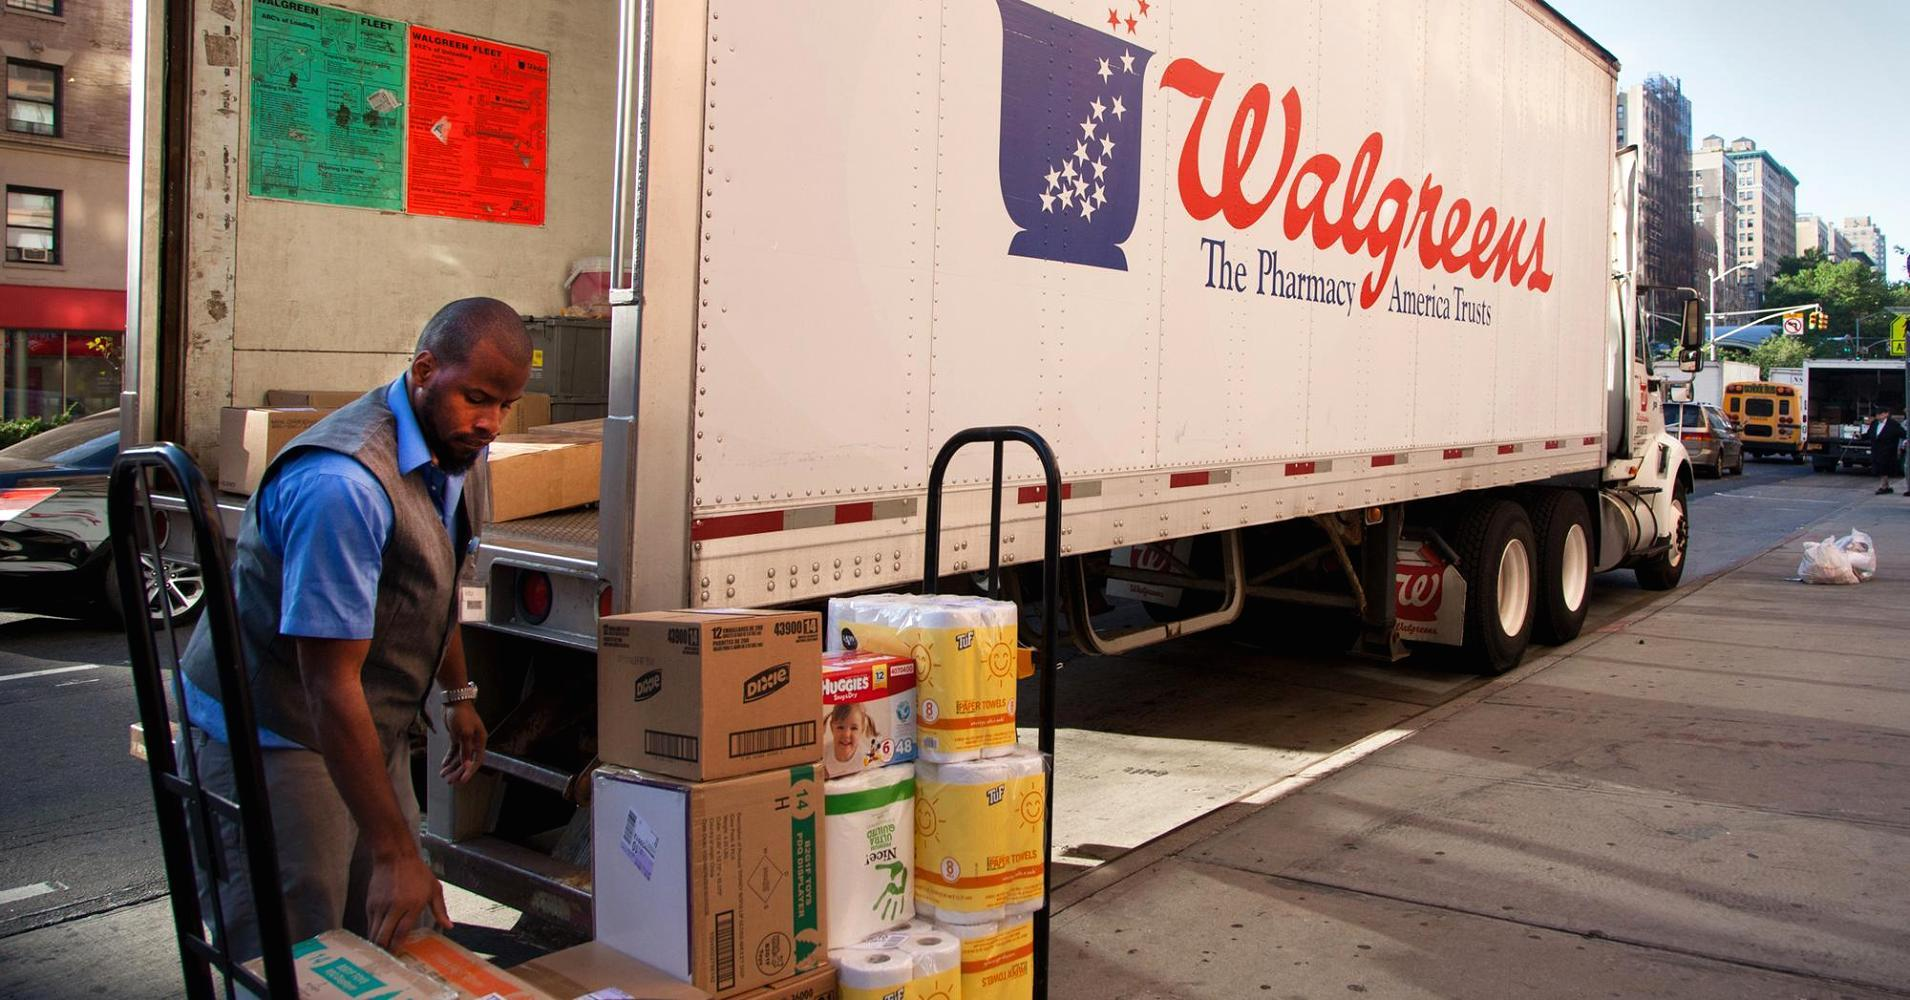 Walgreens, Rite Aid shares hammered by US antitrust concerns